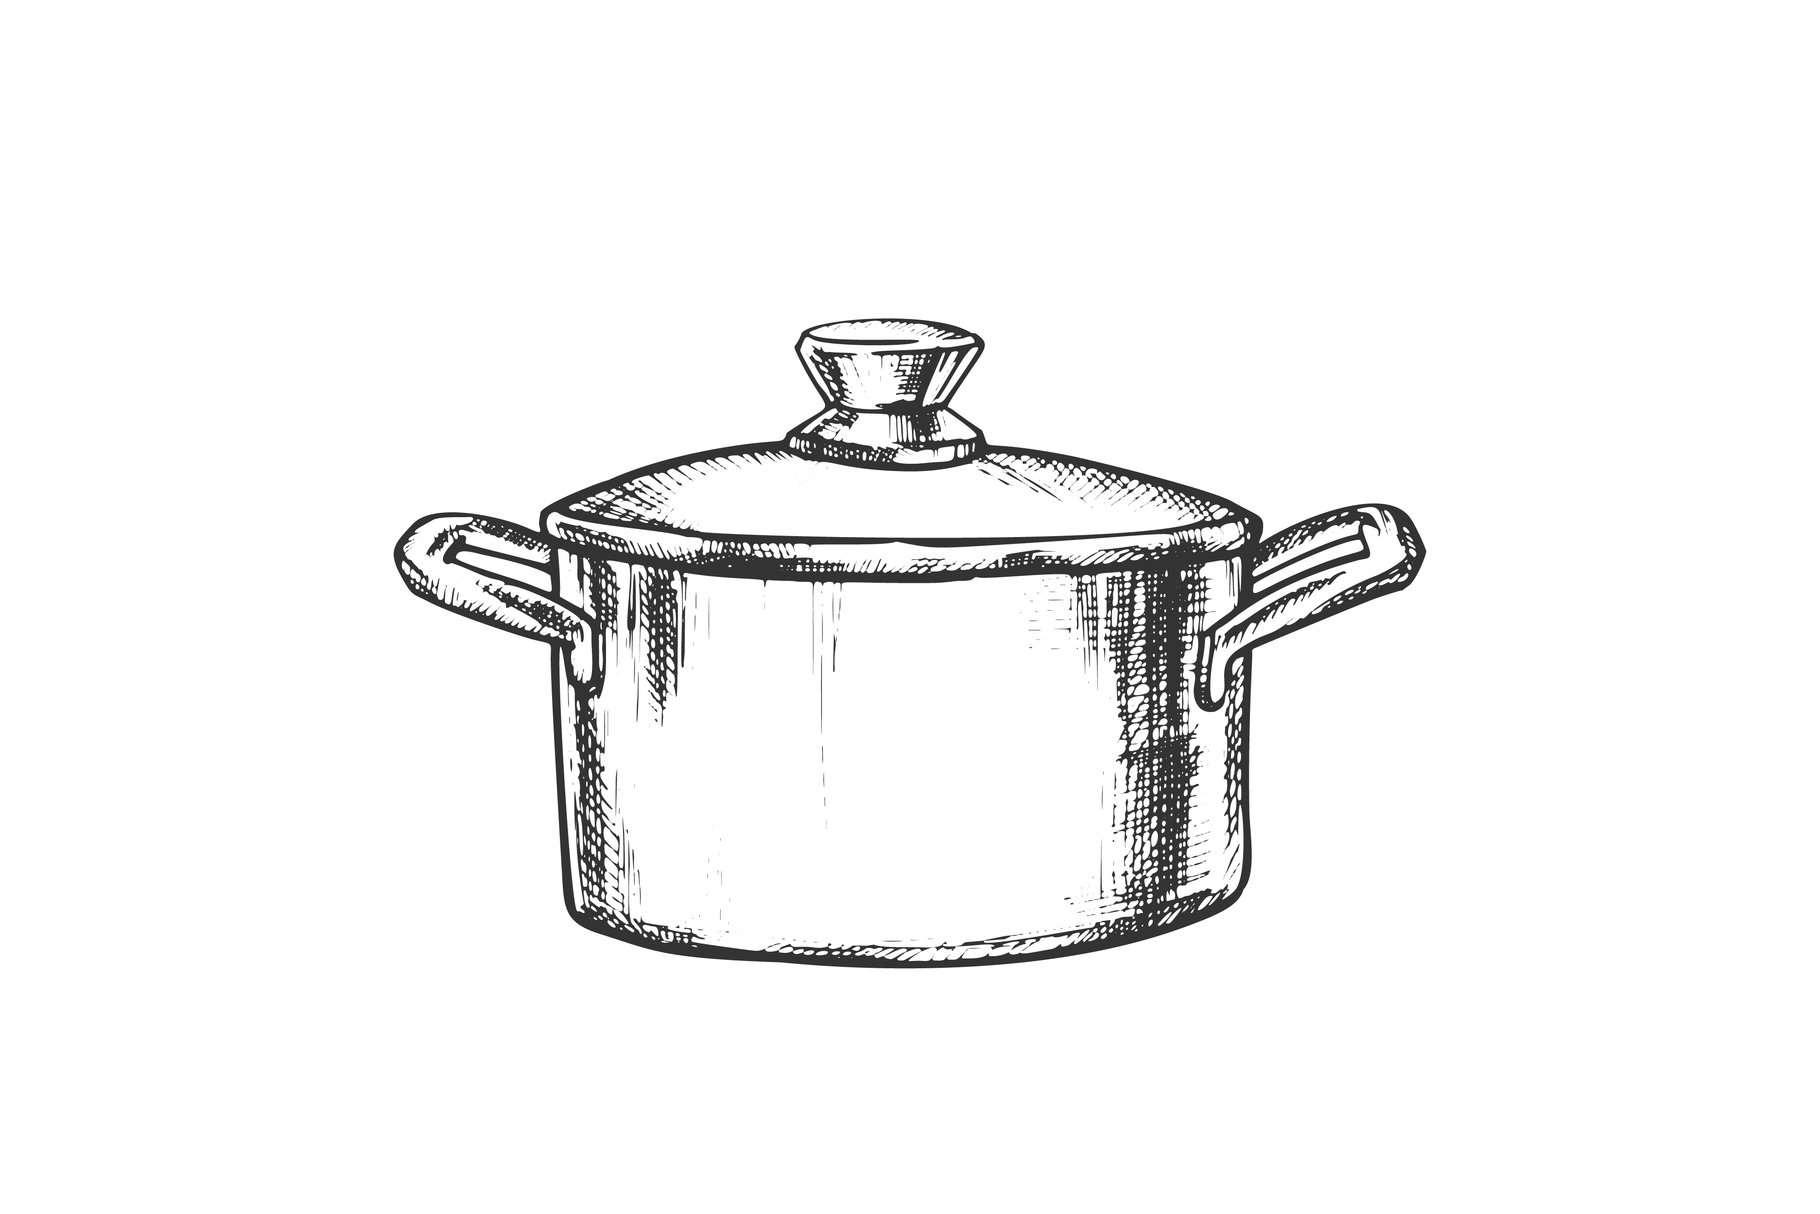 Pot Stainless Cooking Kitchenware Vintage Vector example image 1